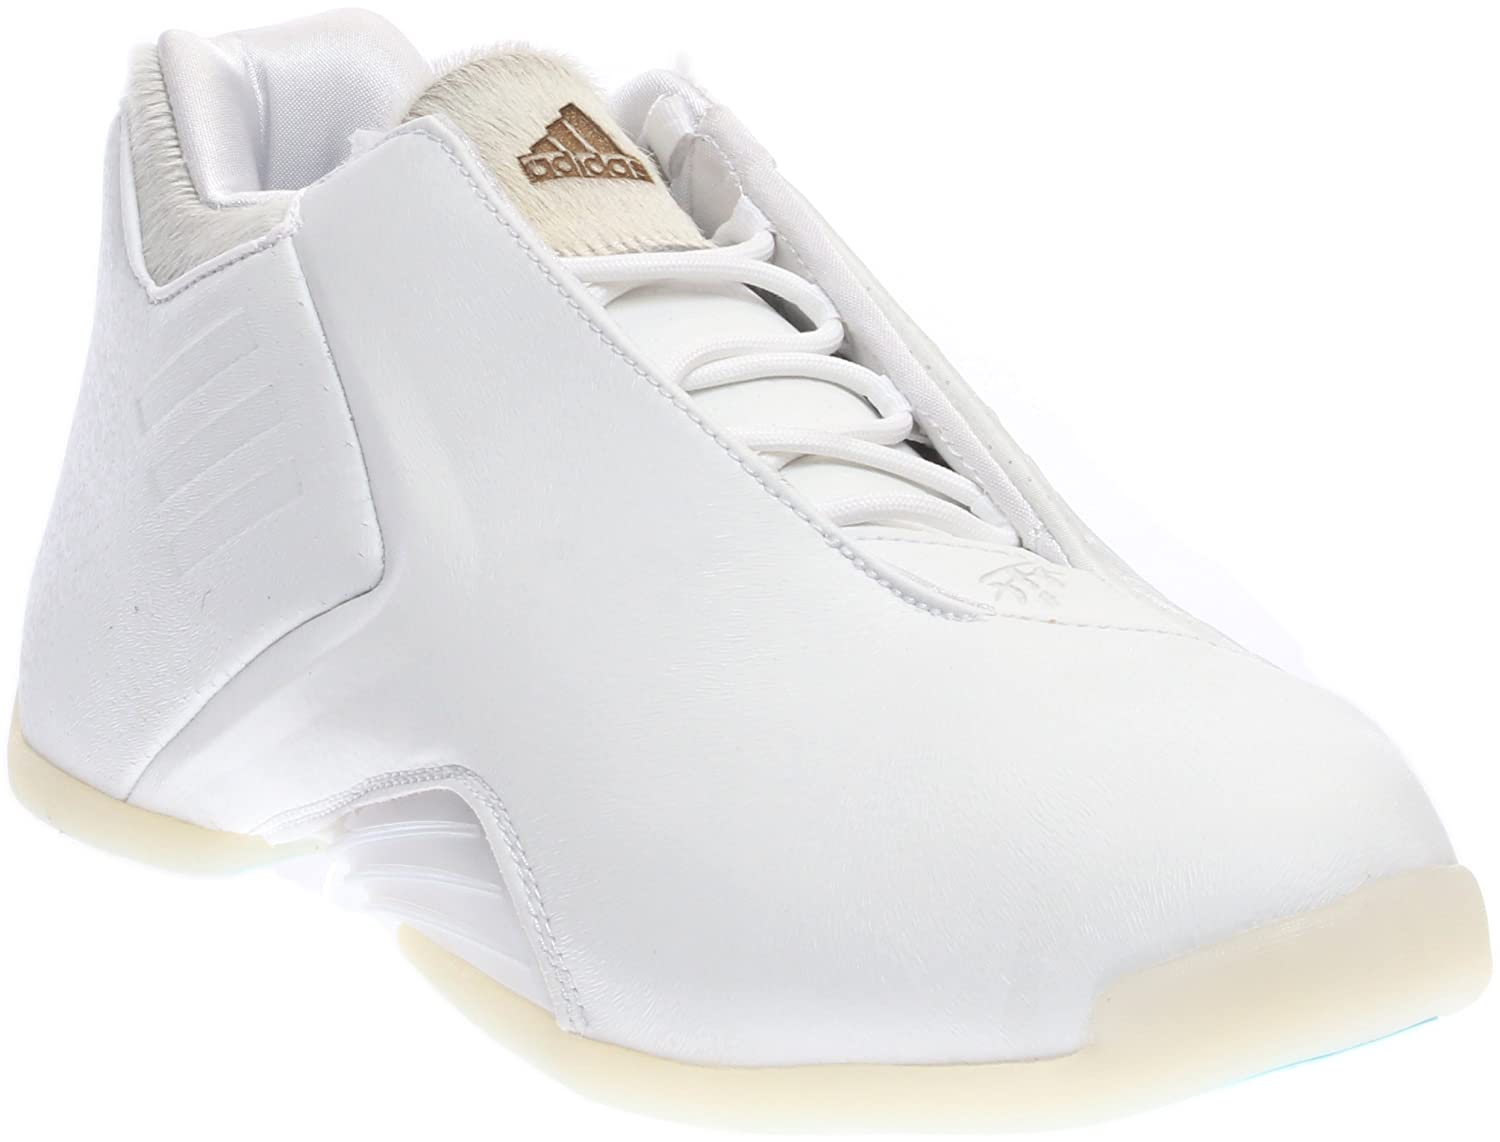 b09e6ed2622 adidas Tmac 3 Basketball Glow in The Dark Men s Shoes Size  Amazon.co.uk   Shoes   Bags